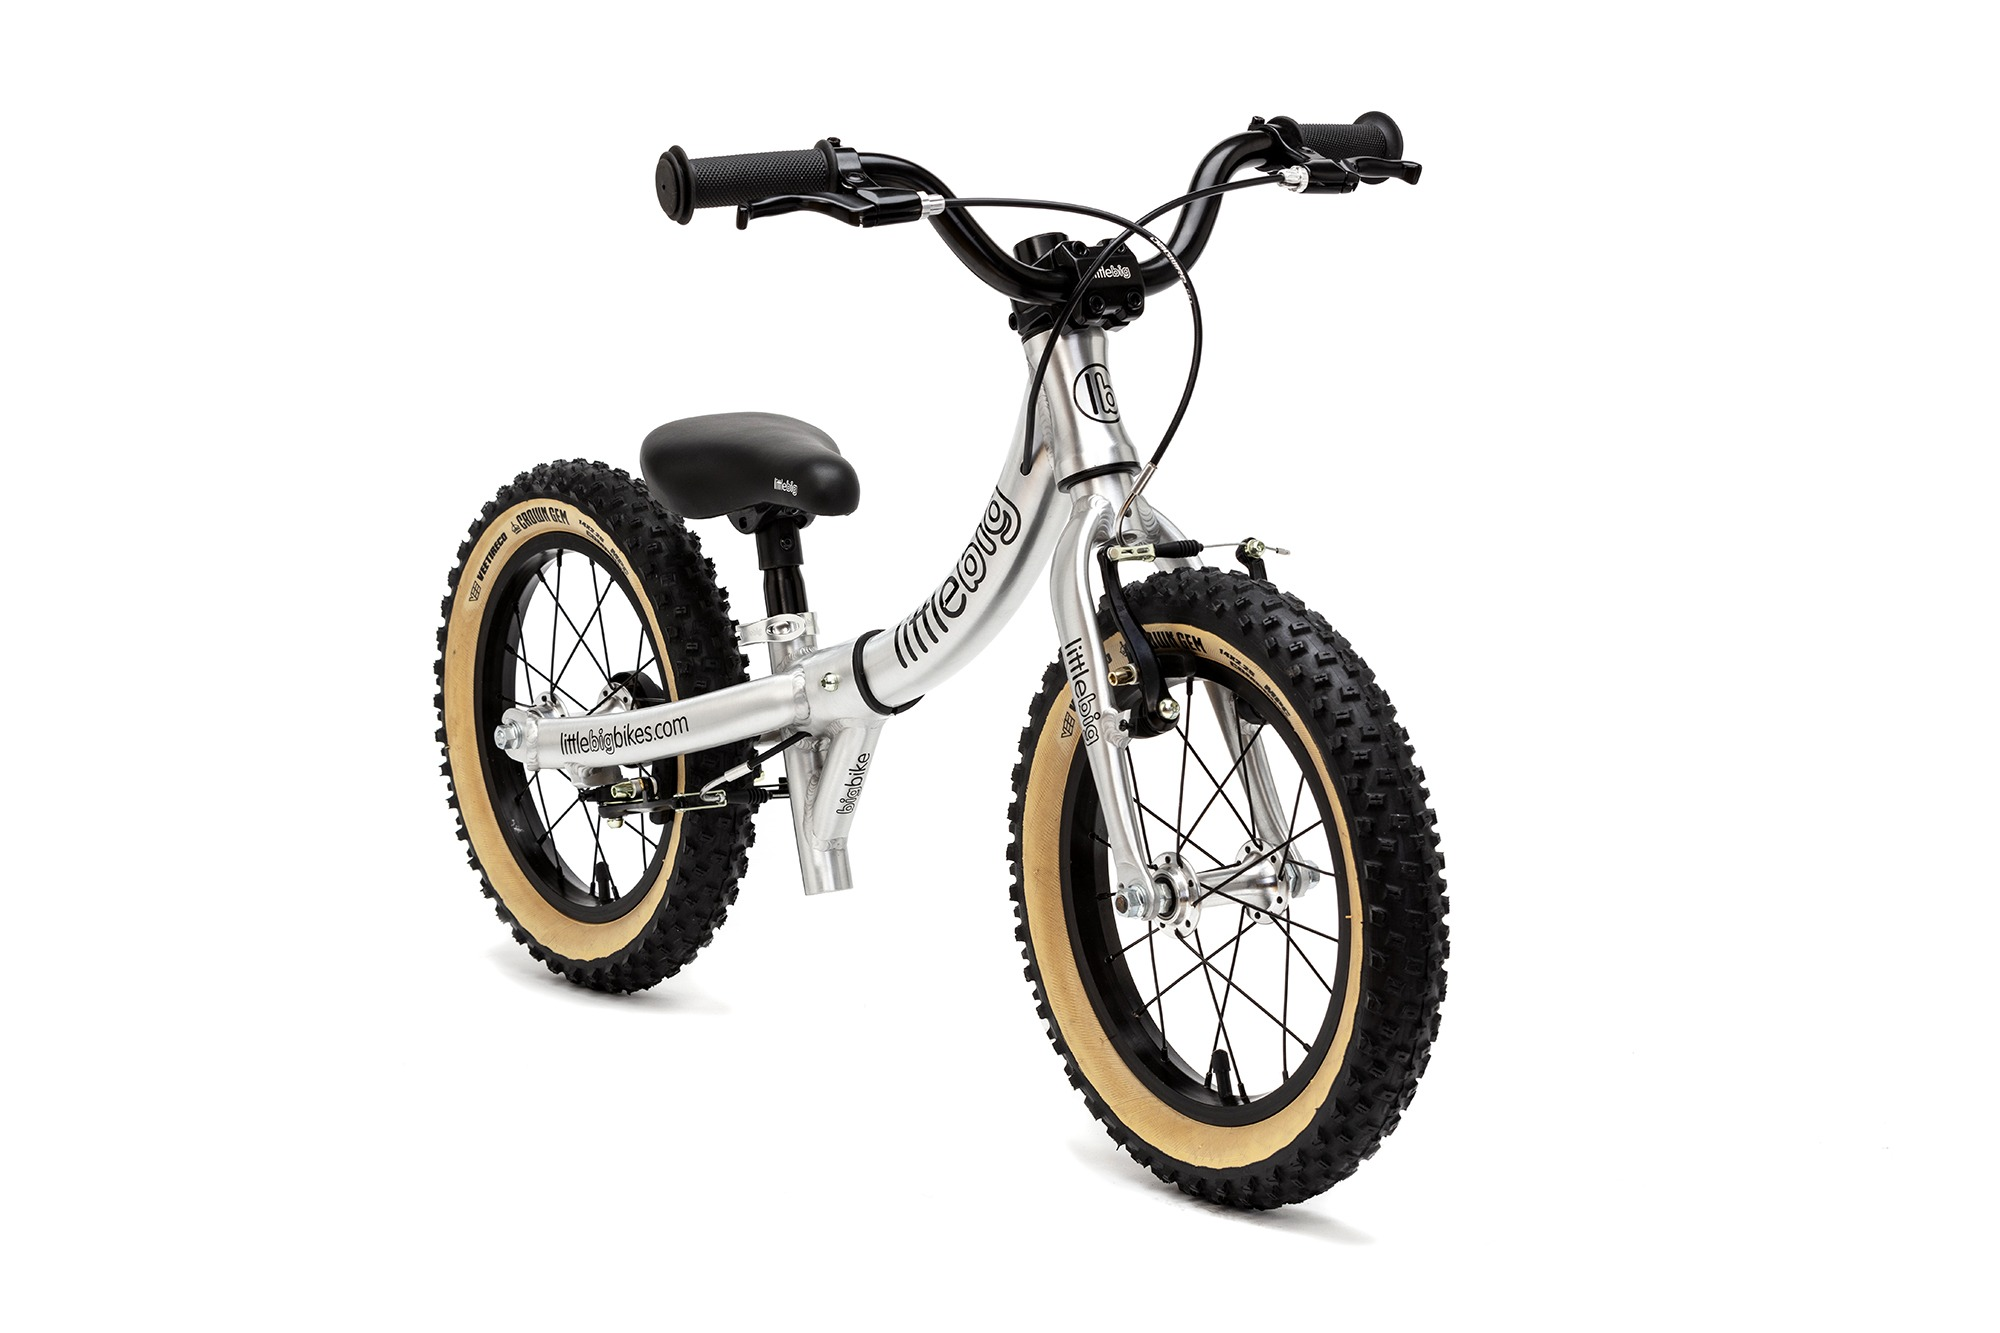 PLUS+ balance bike little mode brushed front